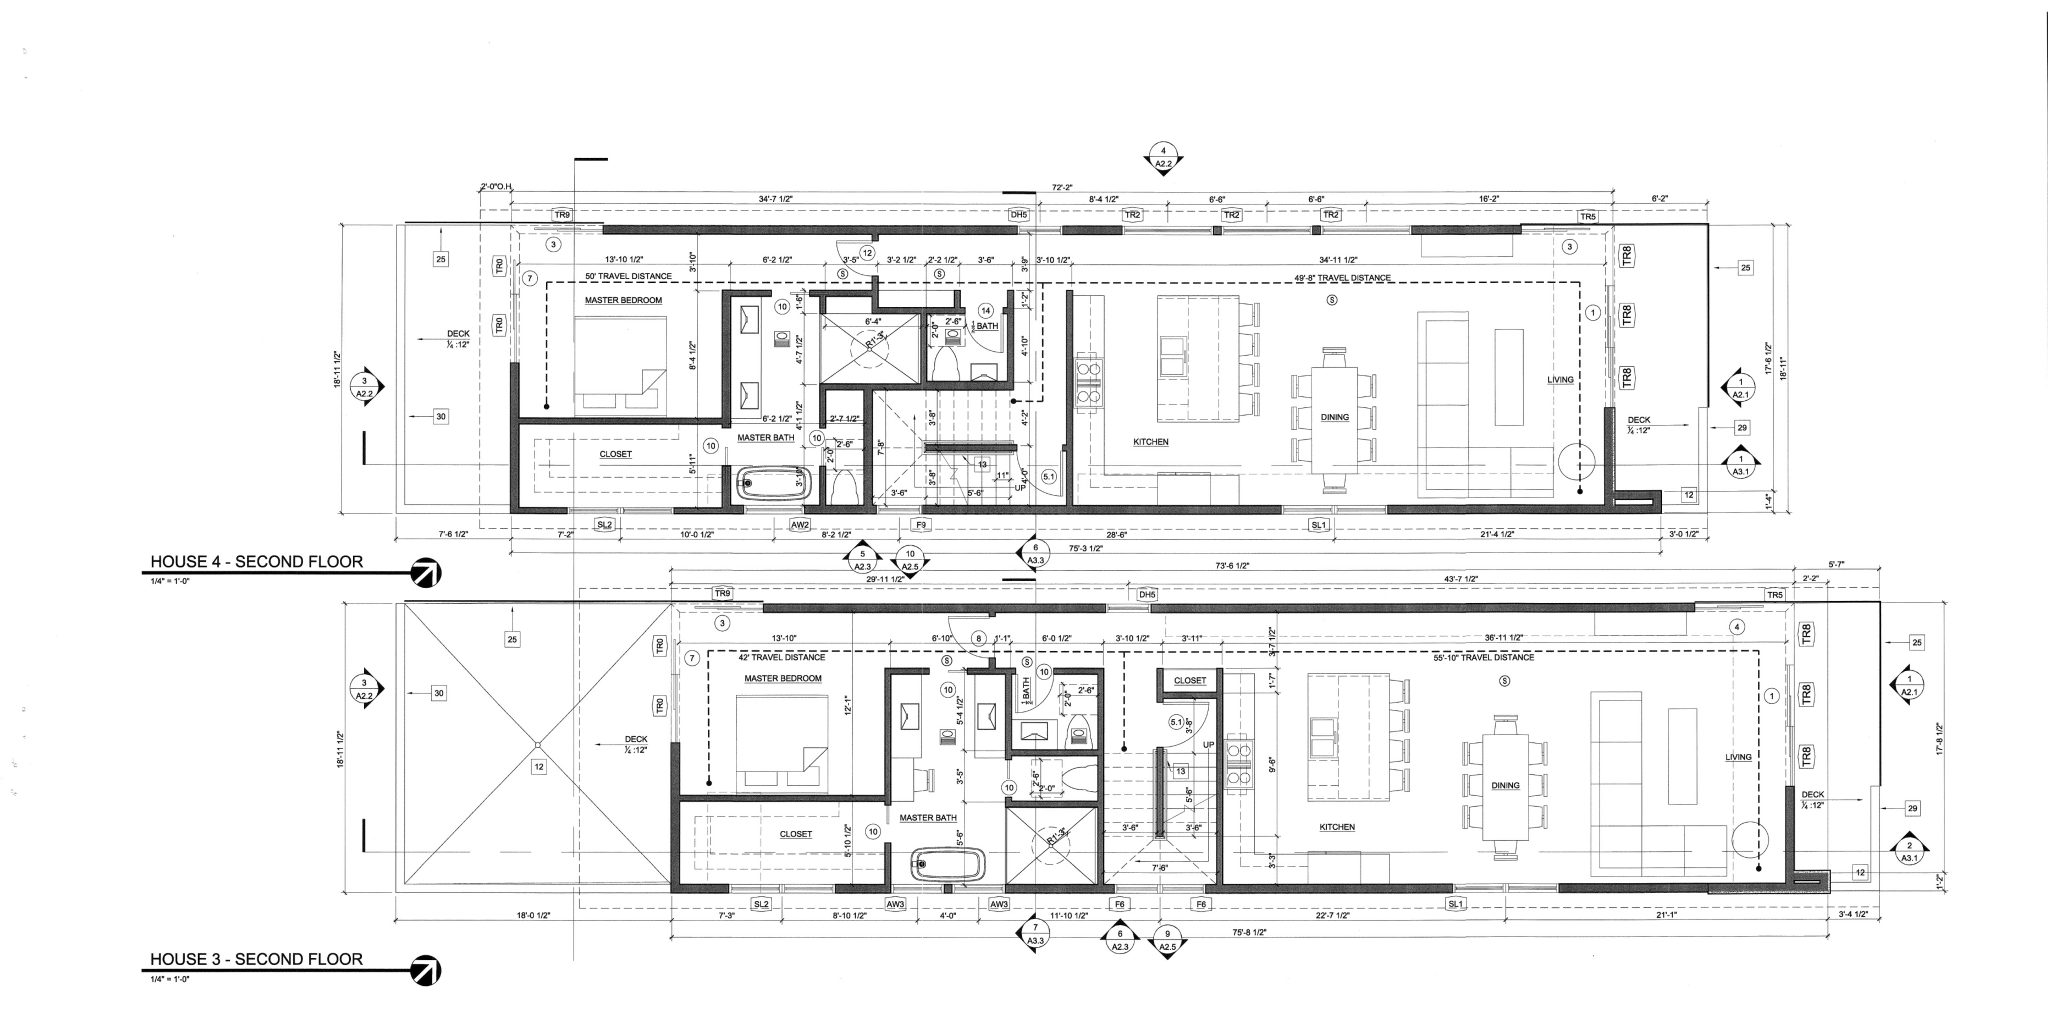 House 3 and 4 Second Floor